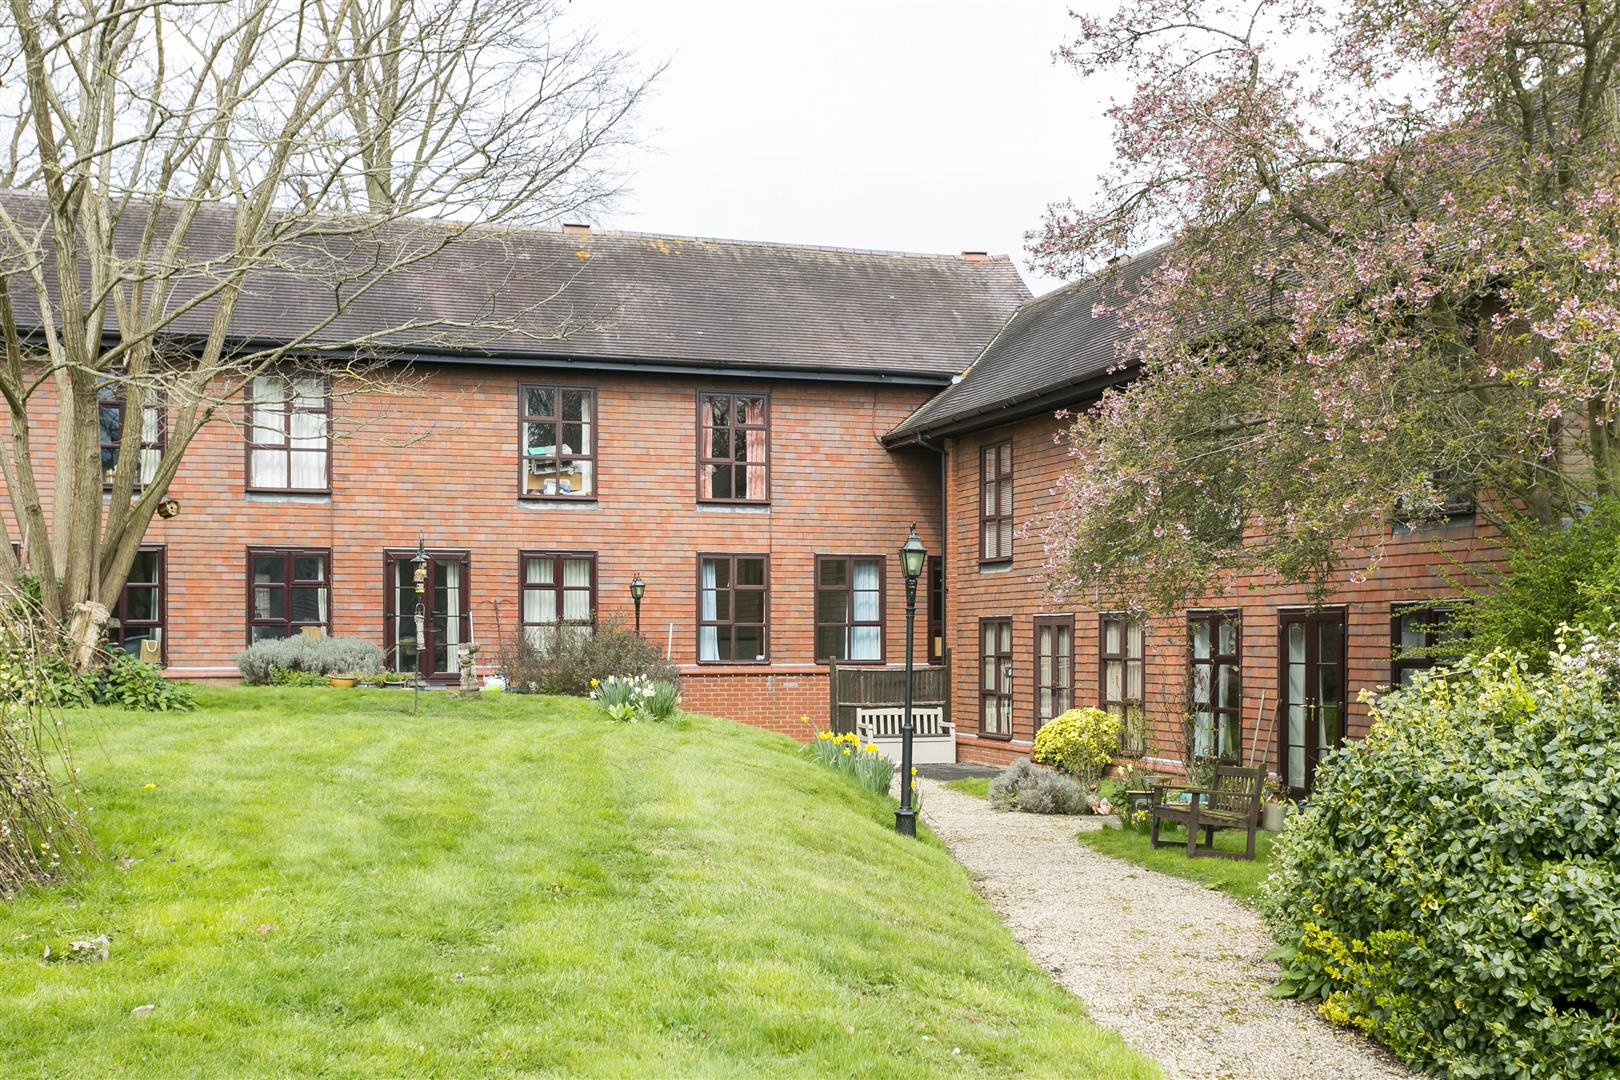 Property in Old Parsonage Court, West Malling, ME19